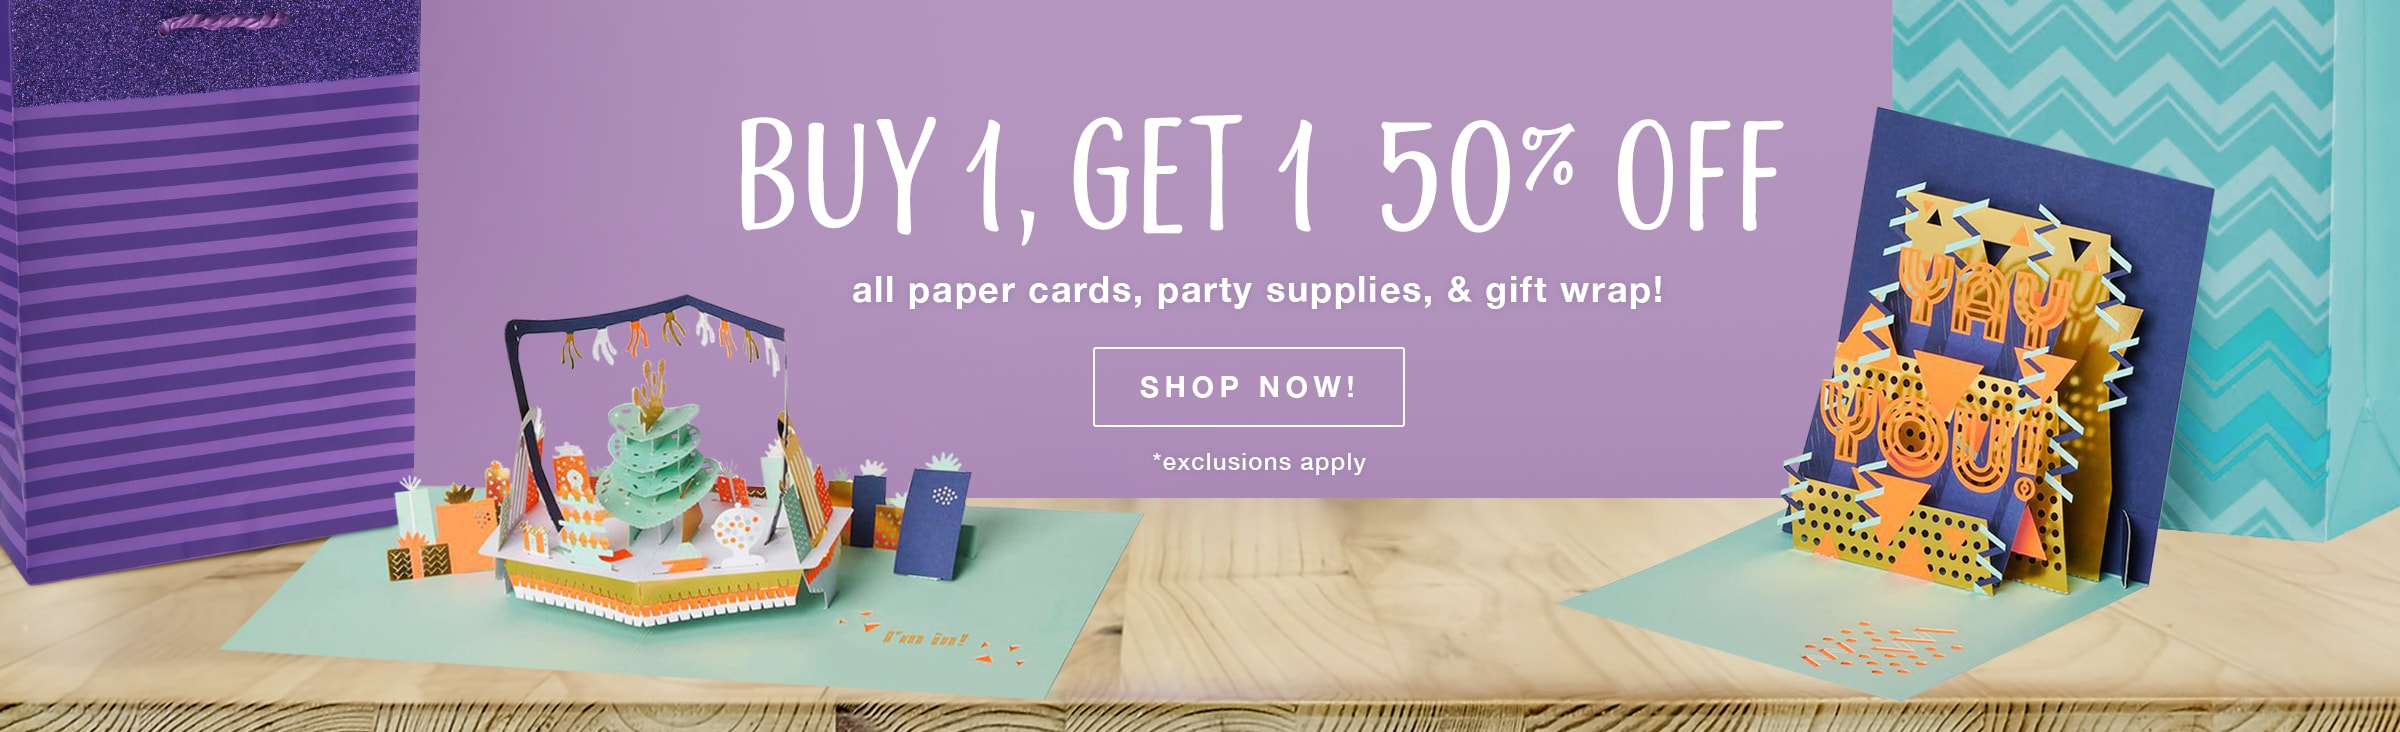 Buy 1, Get 1 50% Off all paper cards, party supplies, & gift wrap! Shop now!